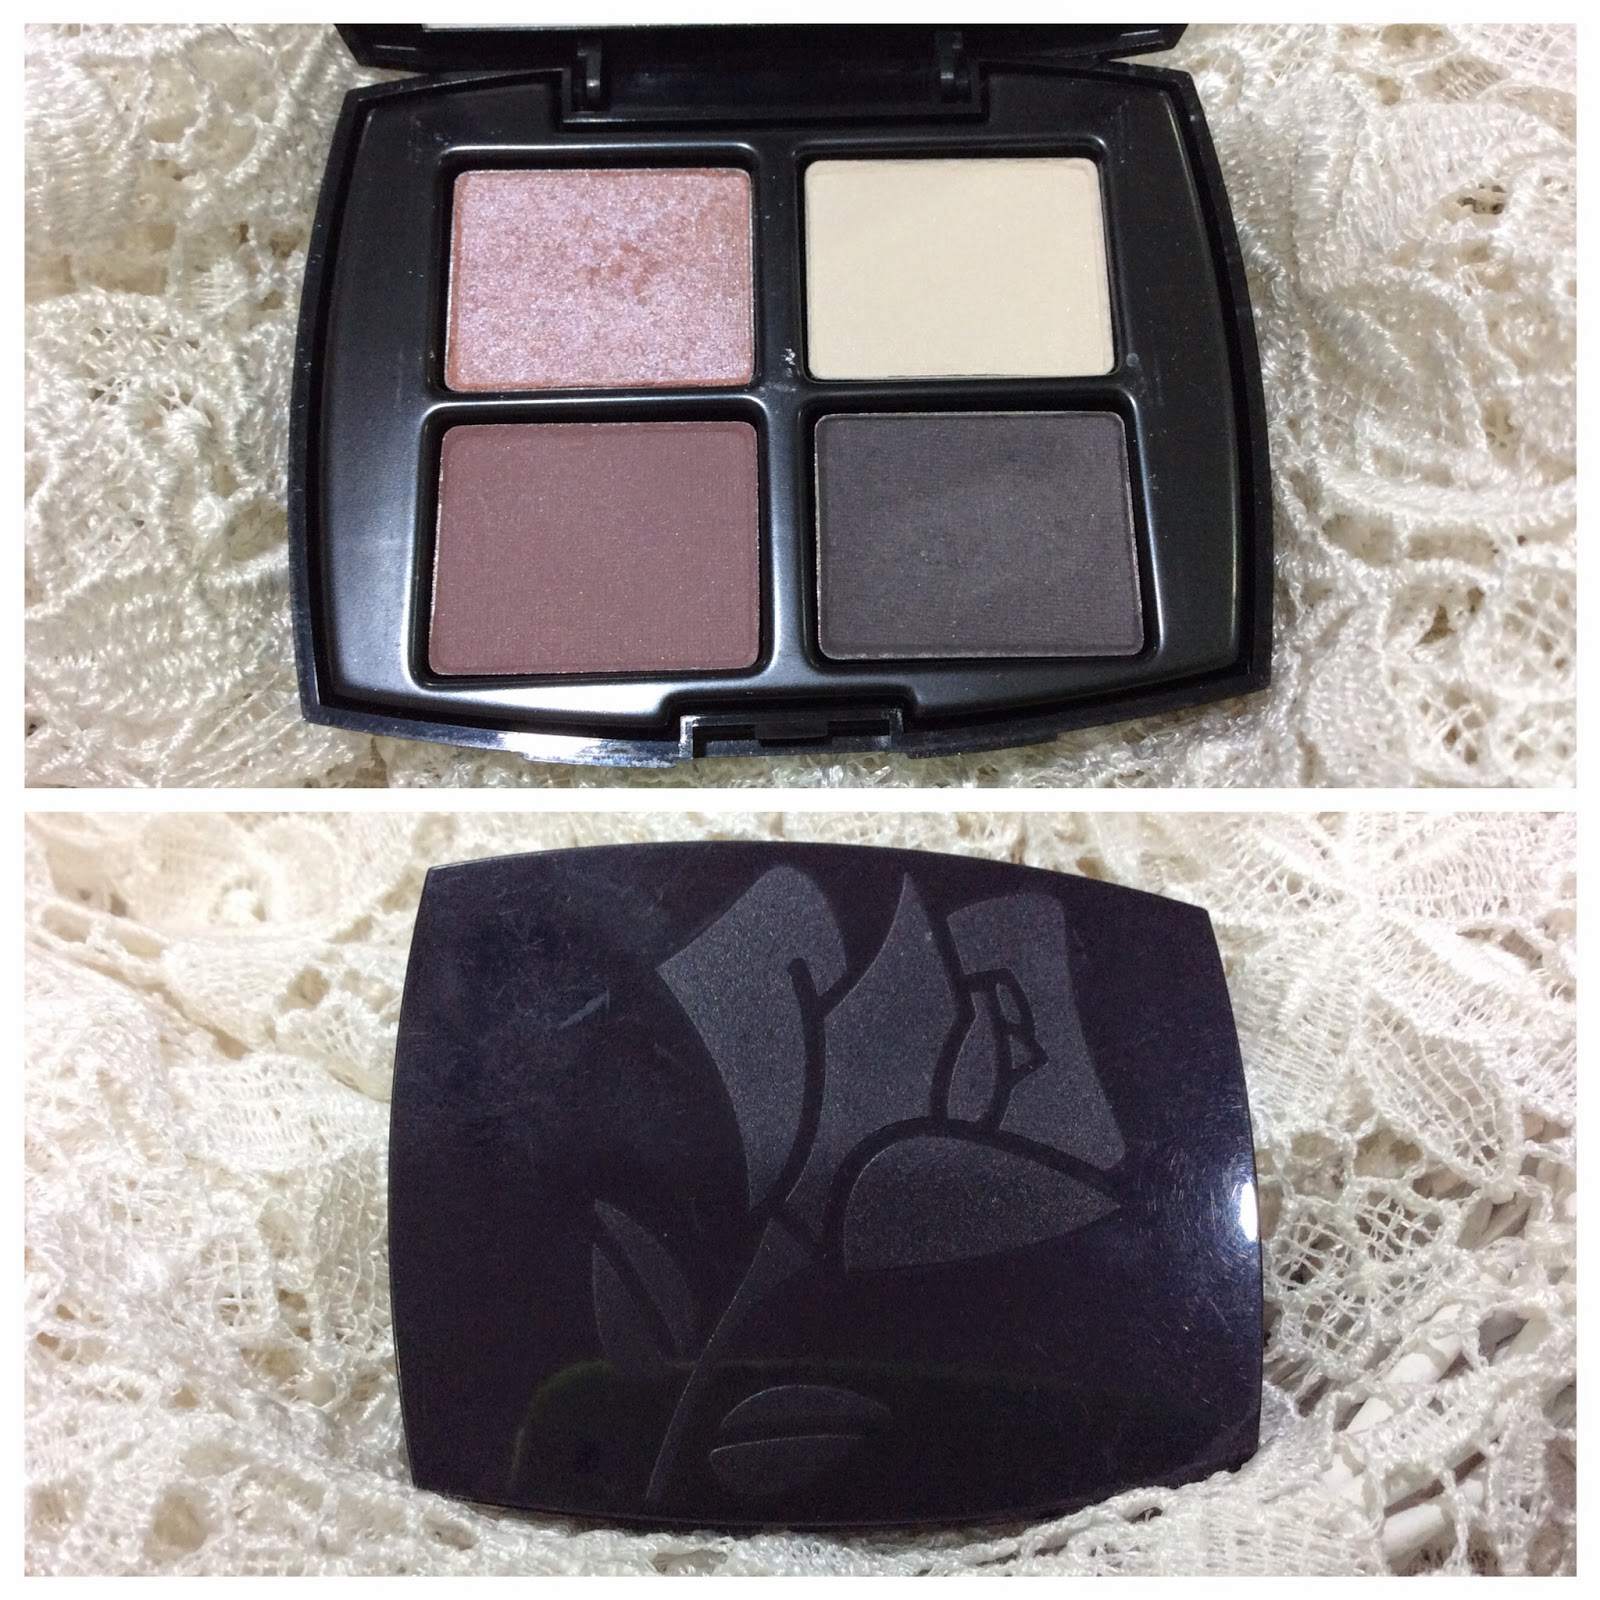 Blog Sale - Lancome Color Design Eyeshadow quad